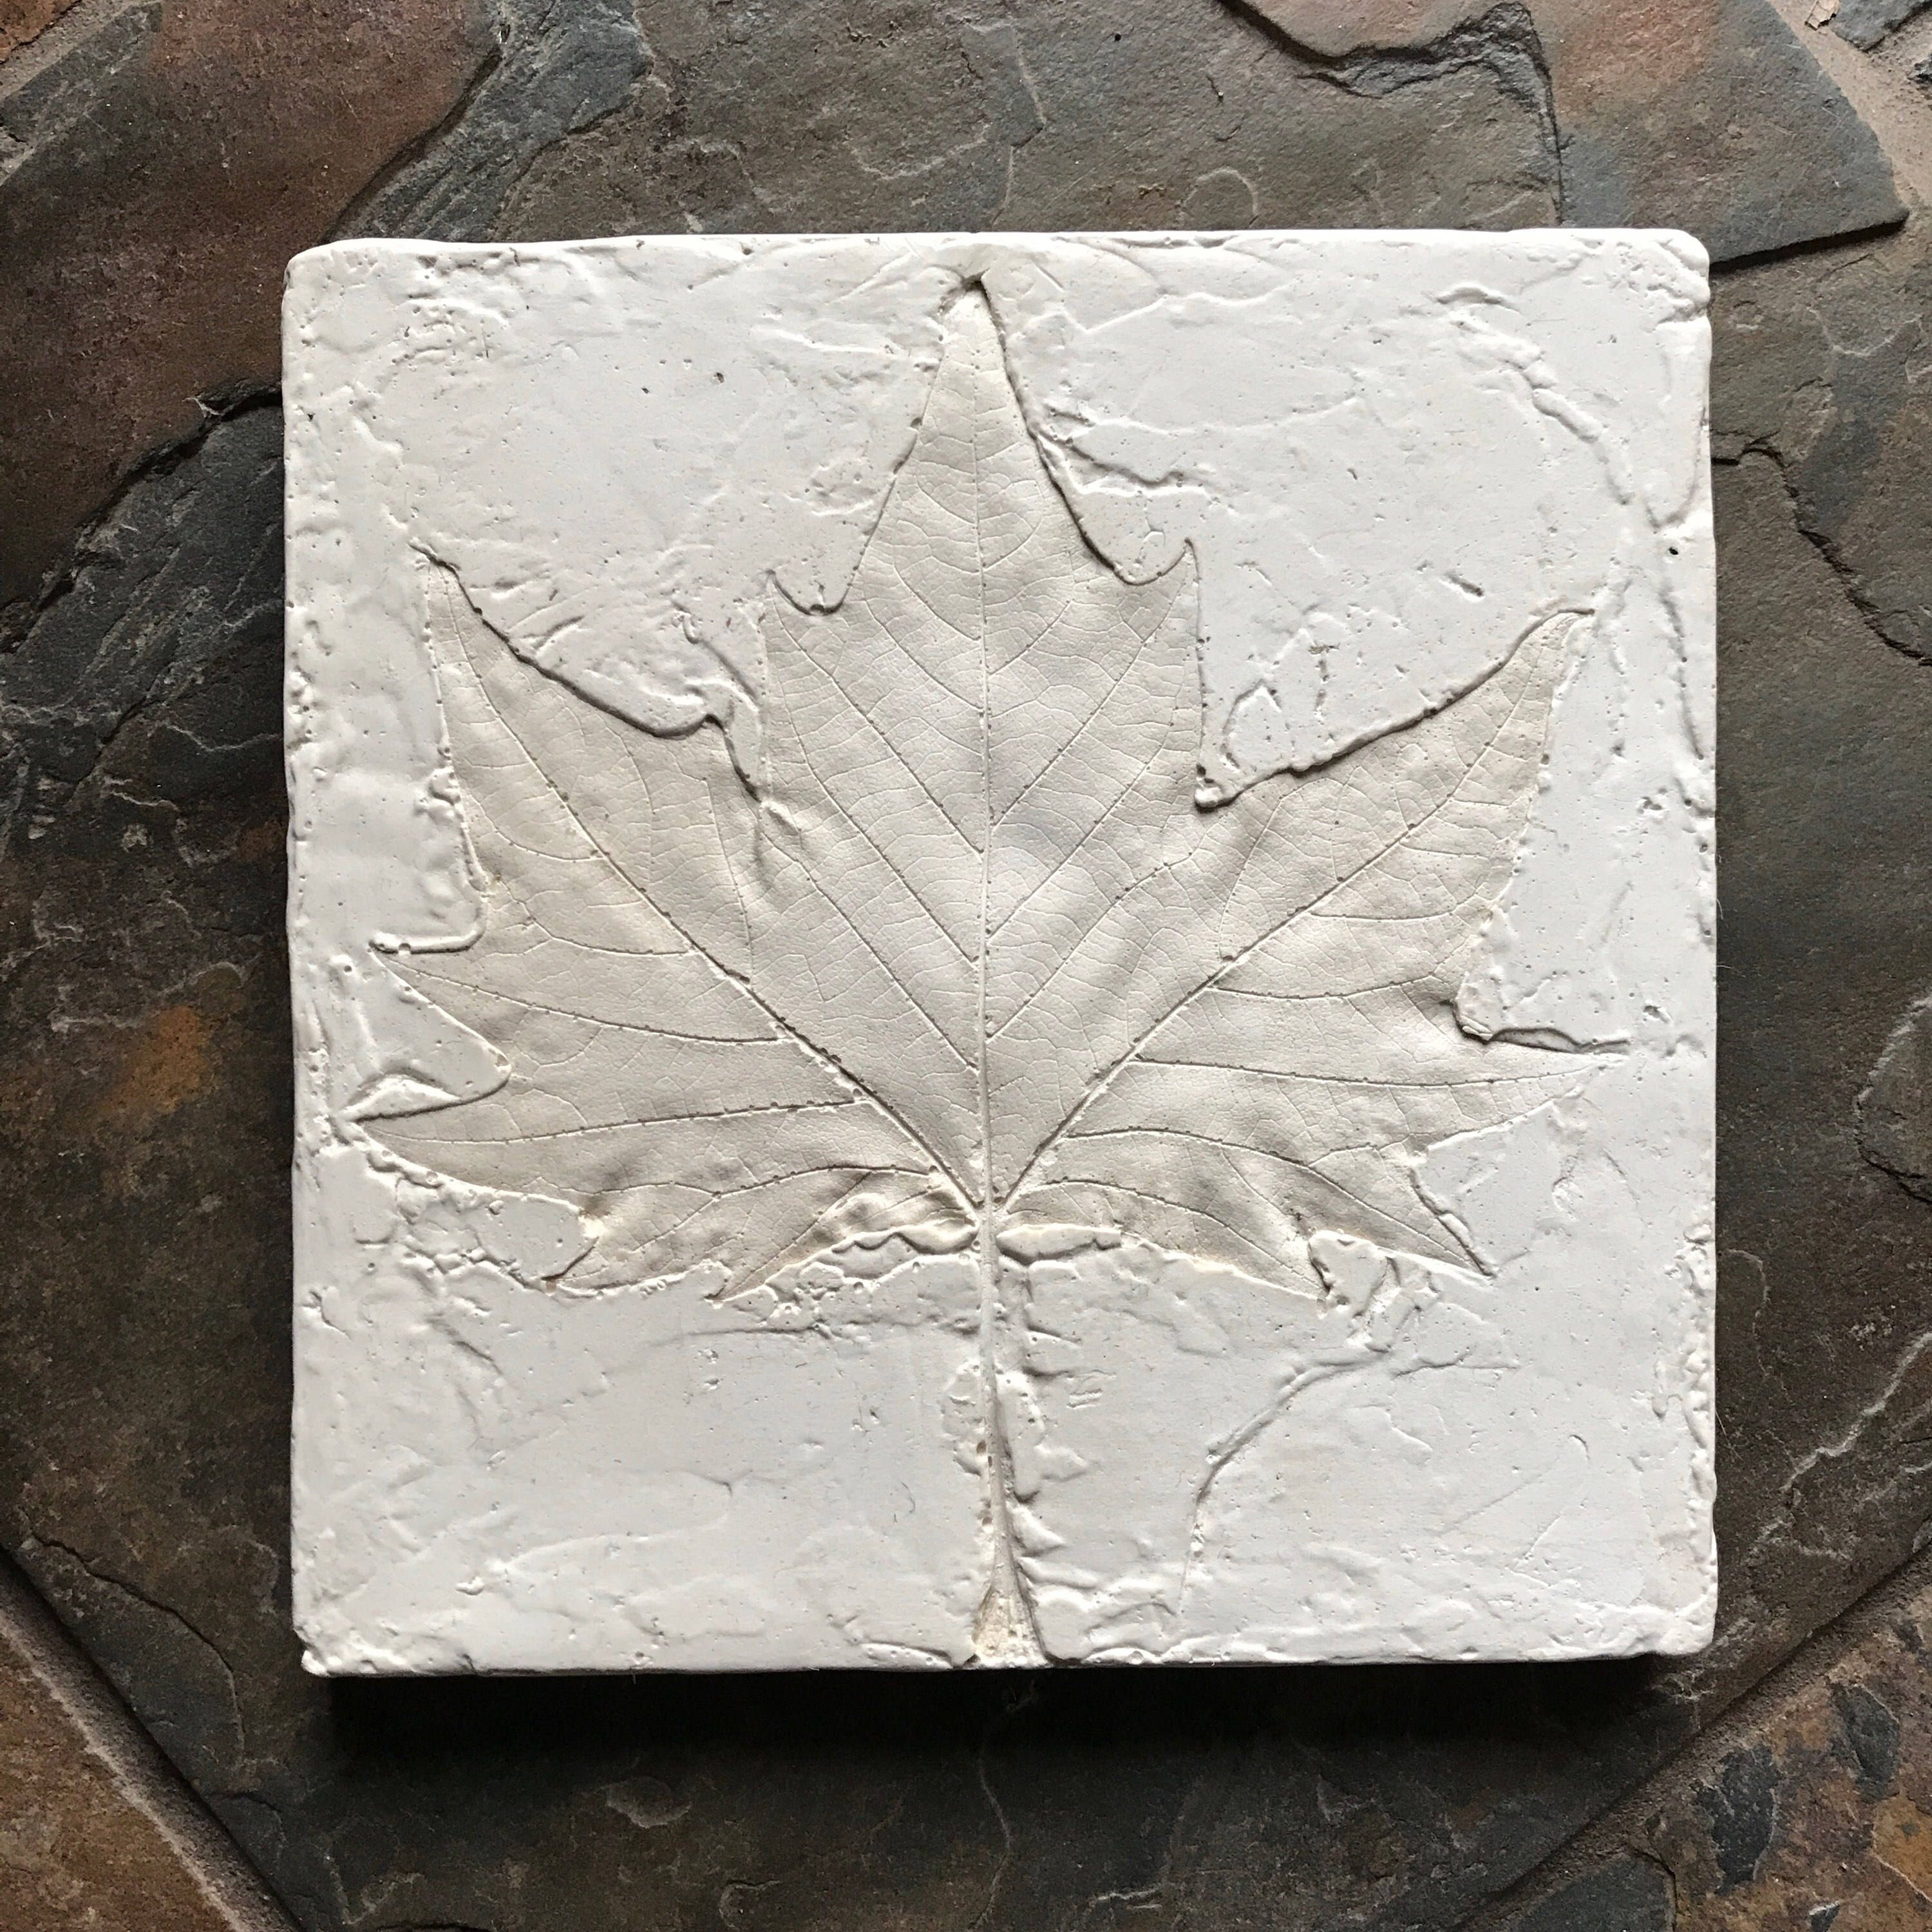 Plaster Cast Sycamore Leaf Print, Handcrafted Wall Art, Botanical Home